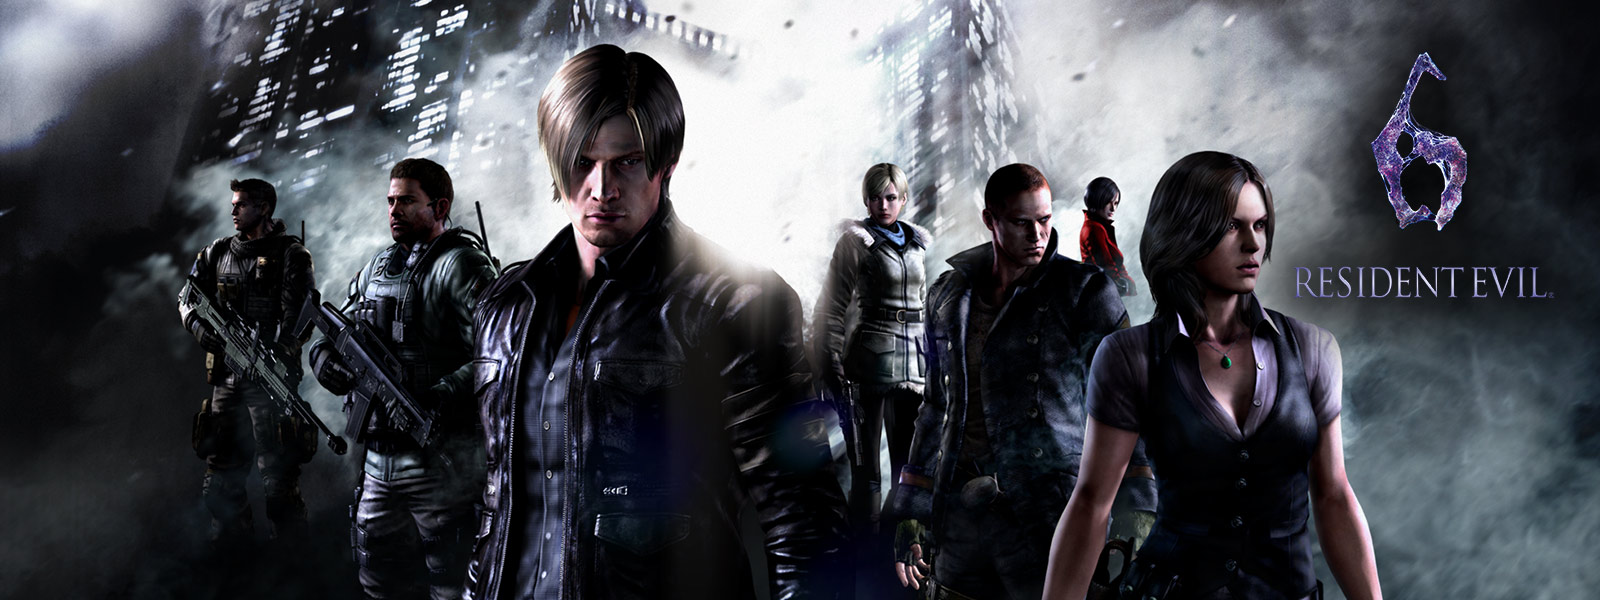 Resident Evil 6, all resident evil characters standing in front of ominous sky scrapers